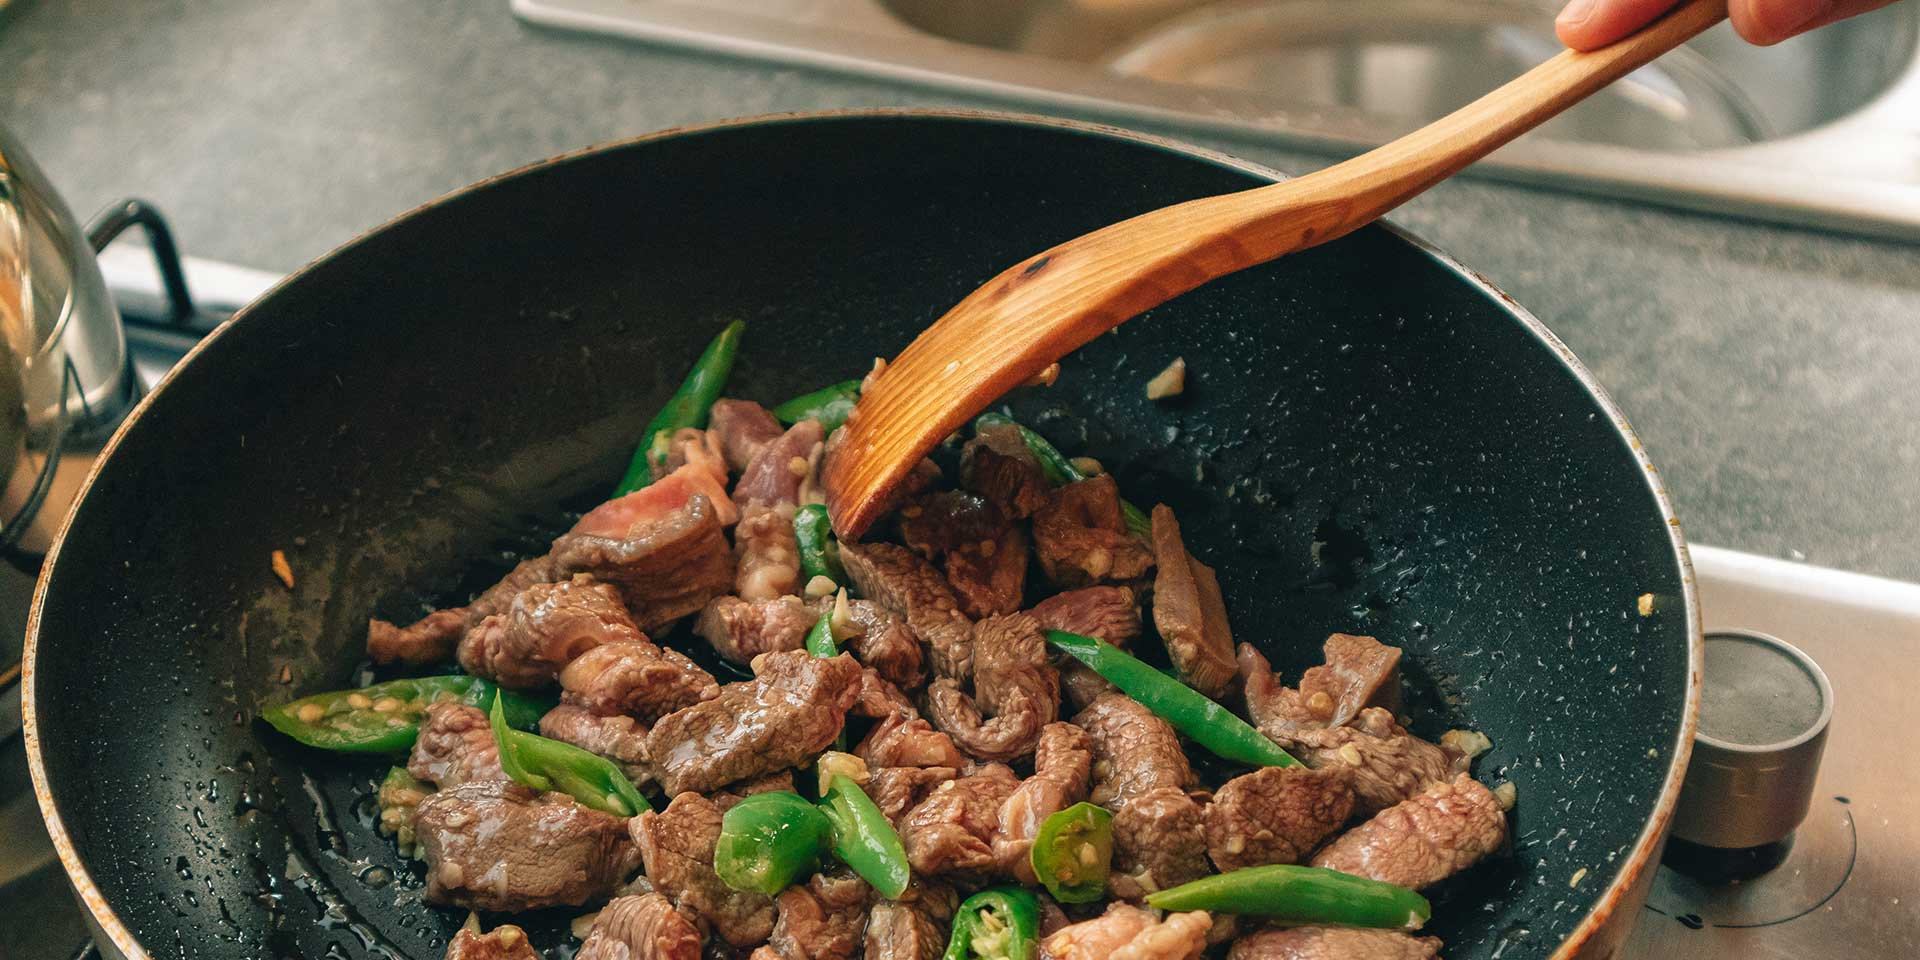 cooking and teflon pan safety